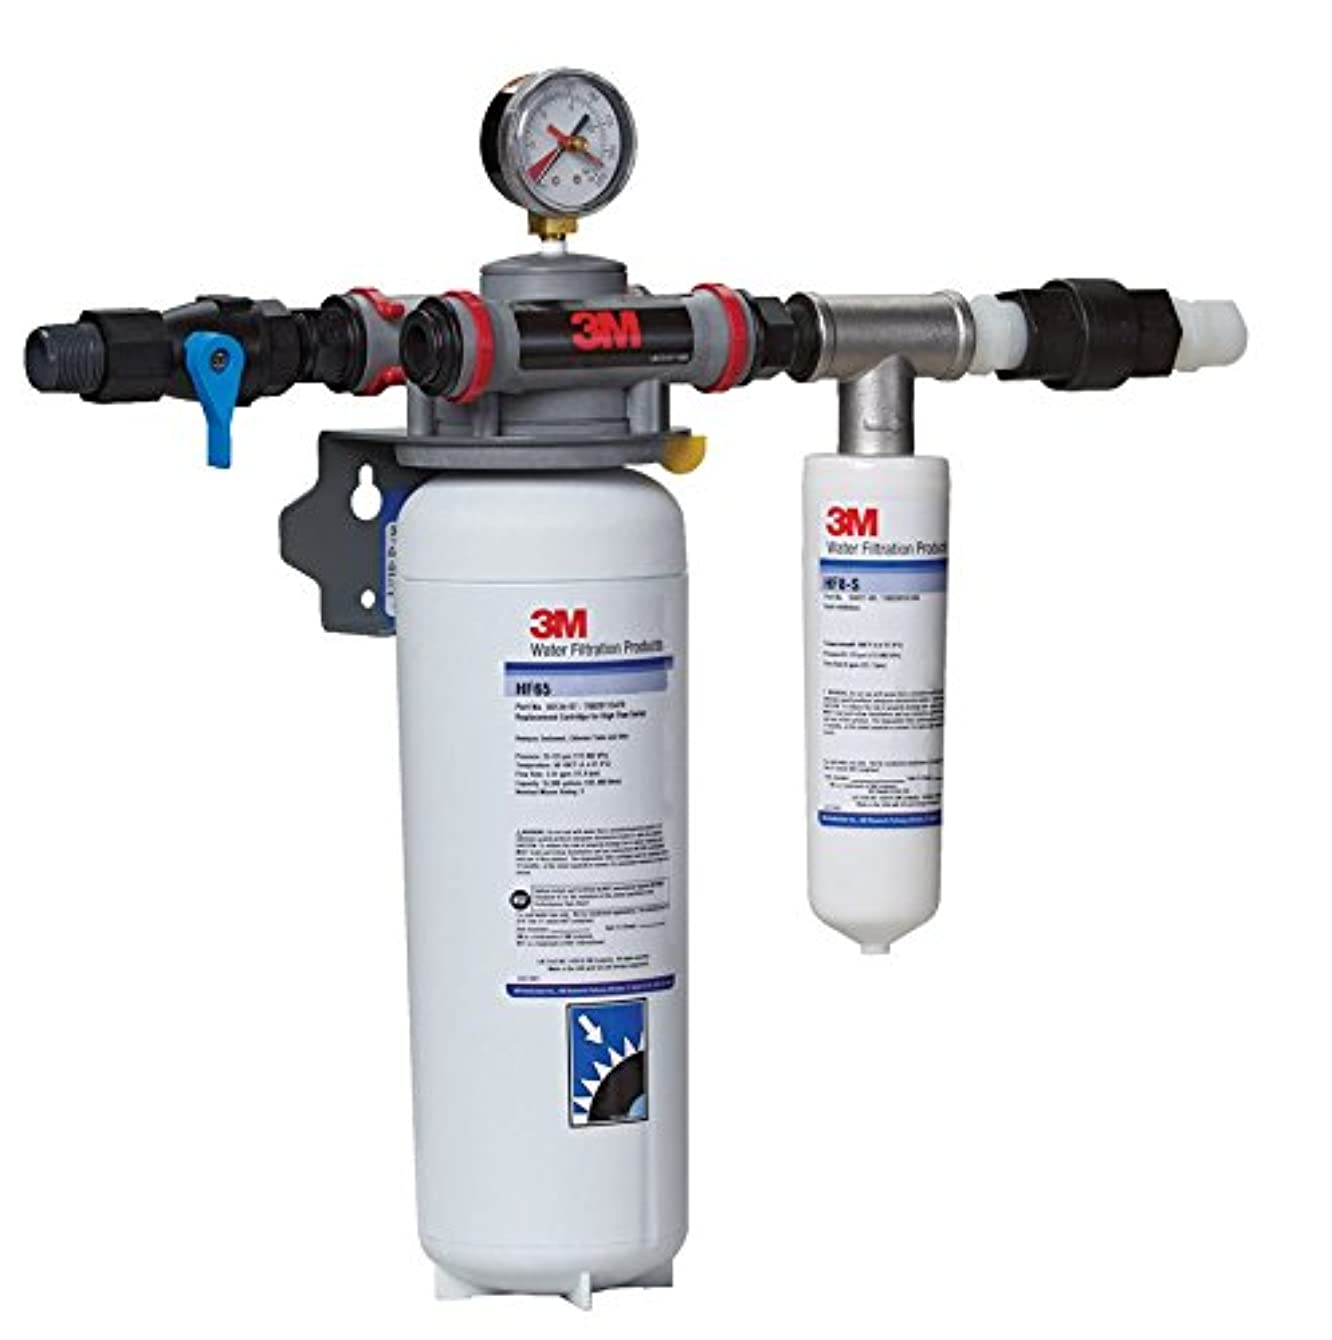 3M Water Filtration Products SF165 5624601 Filtration System